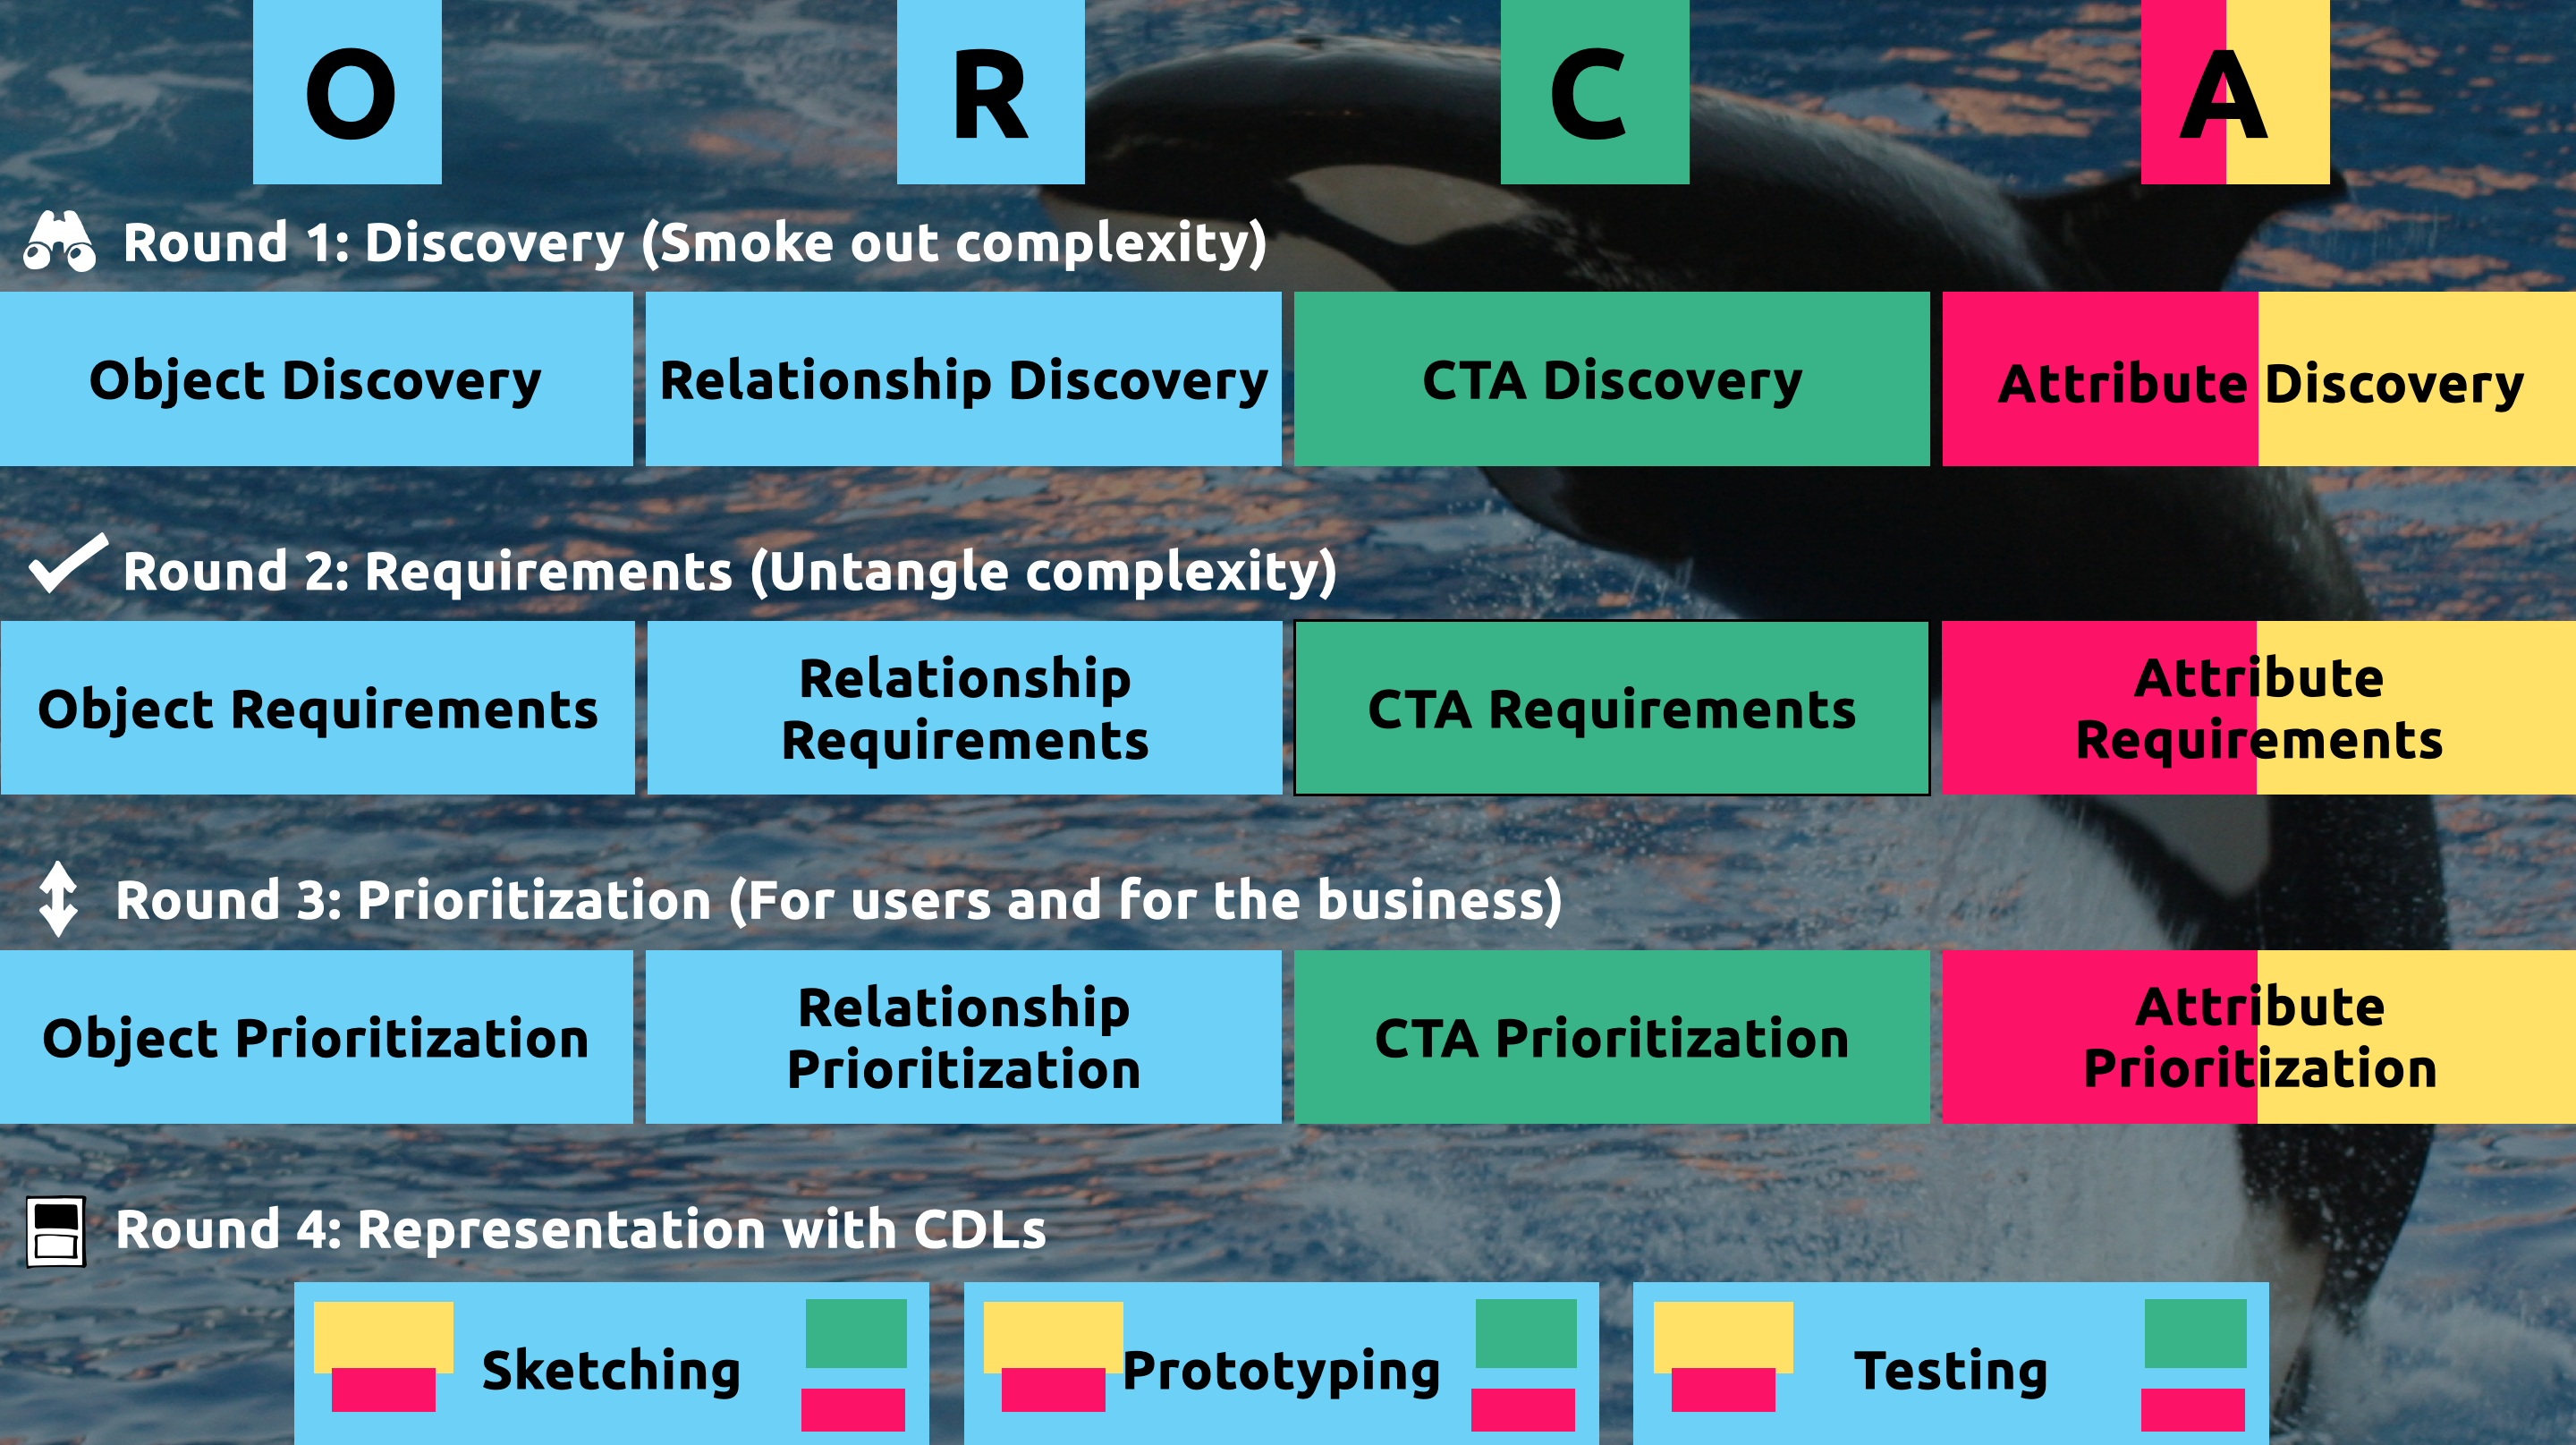 the four rounds of ORCA are Discovery, Requirements, Prioritization, and Representation.